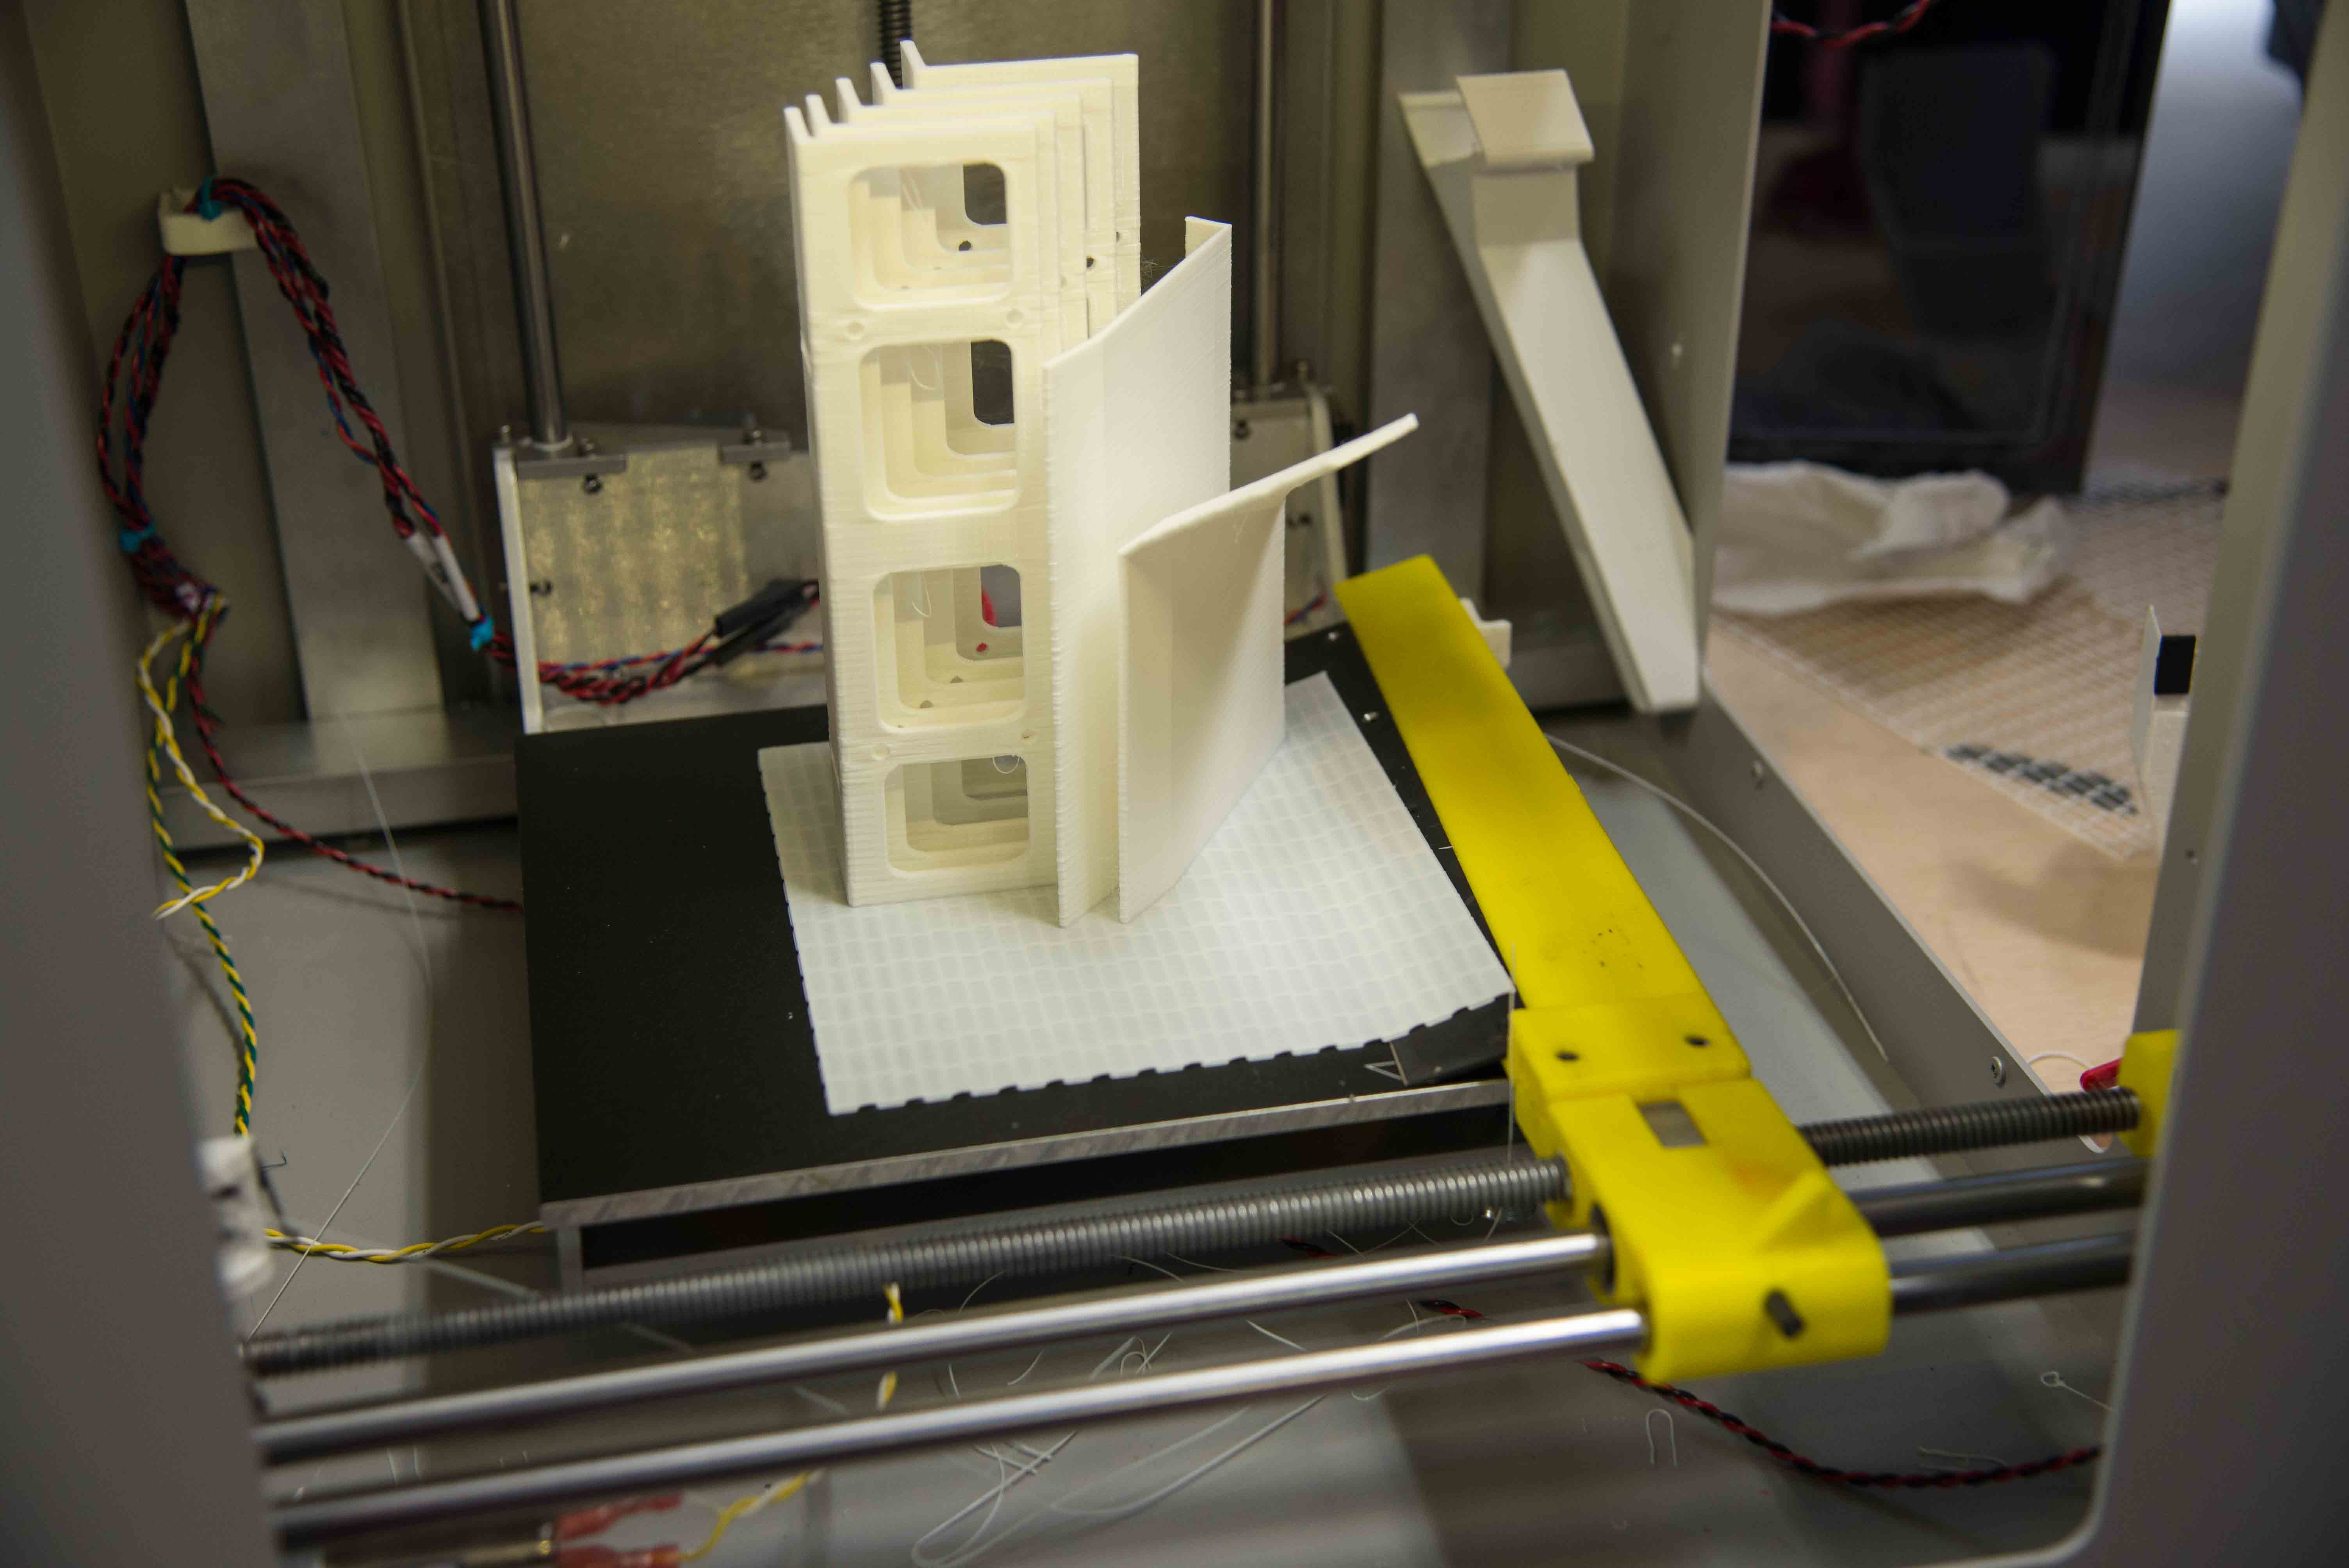 An arm cuts away 3D printed objects so the next job can run. Credit: Martin LaMonica.